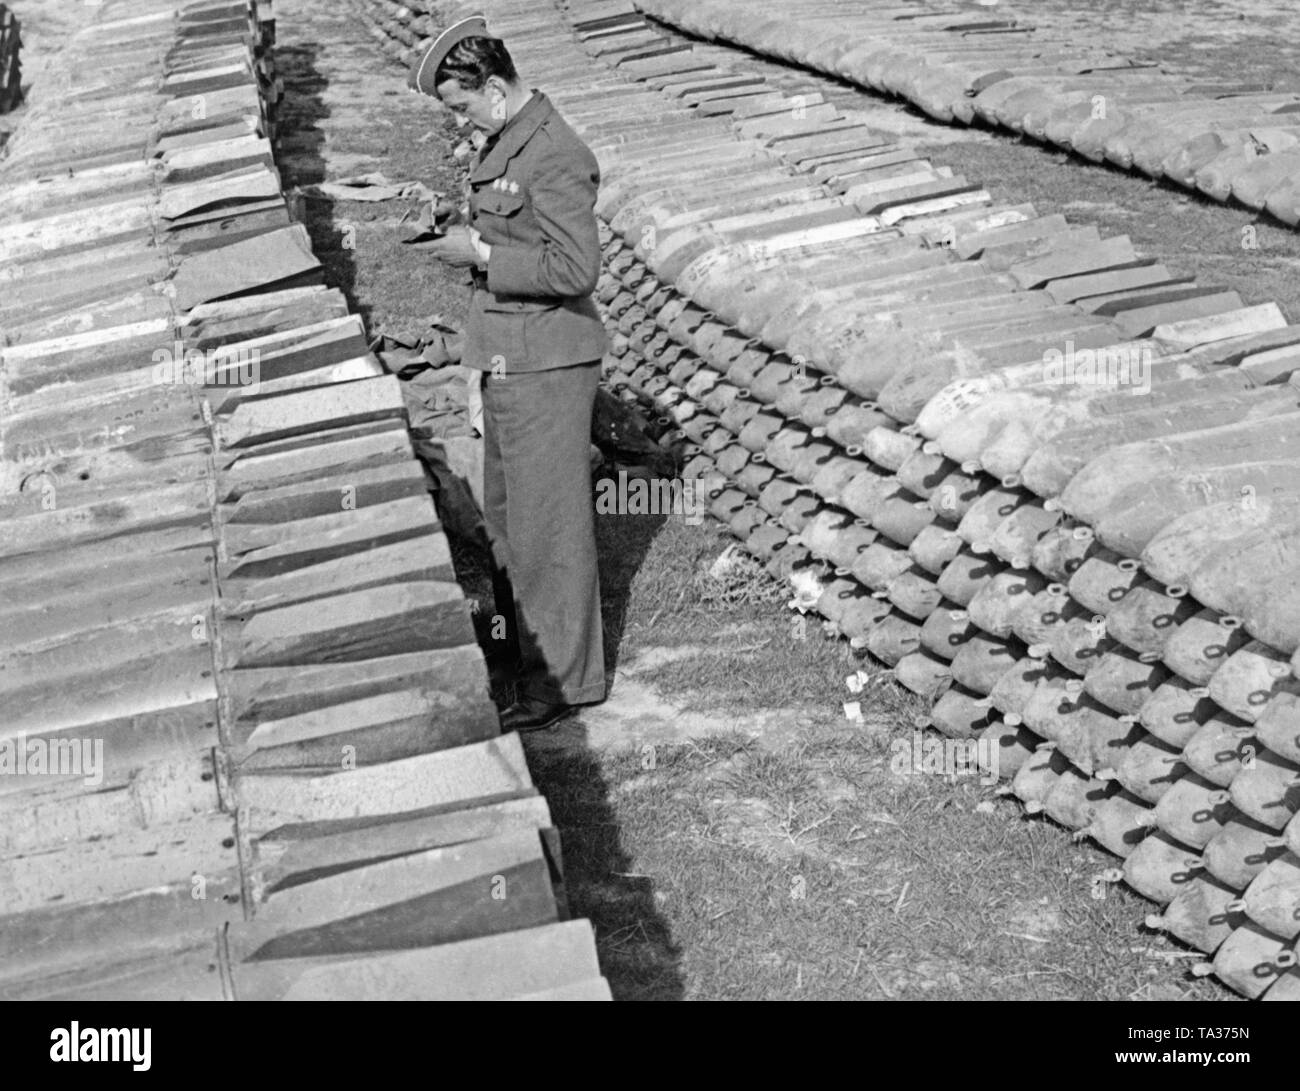 A first lieutenant of the Condor Legion inspects the bomb stock of 250kg aerial bombs piled up on an airfield in Spain. - Stock Image